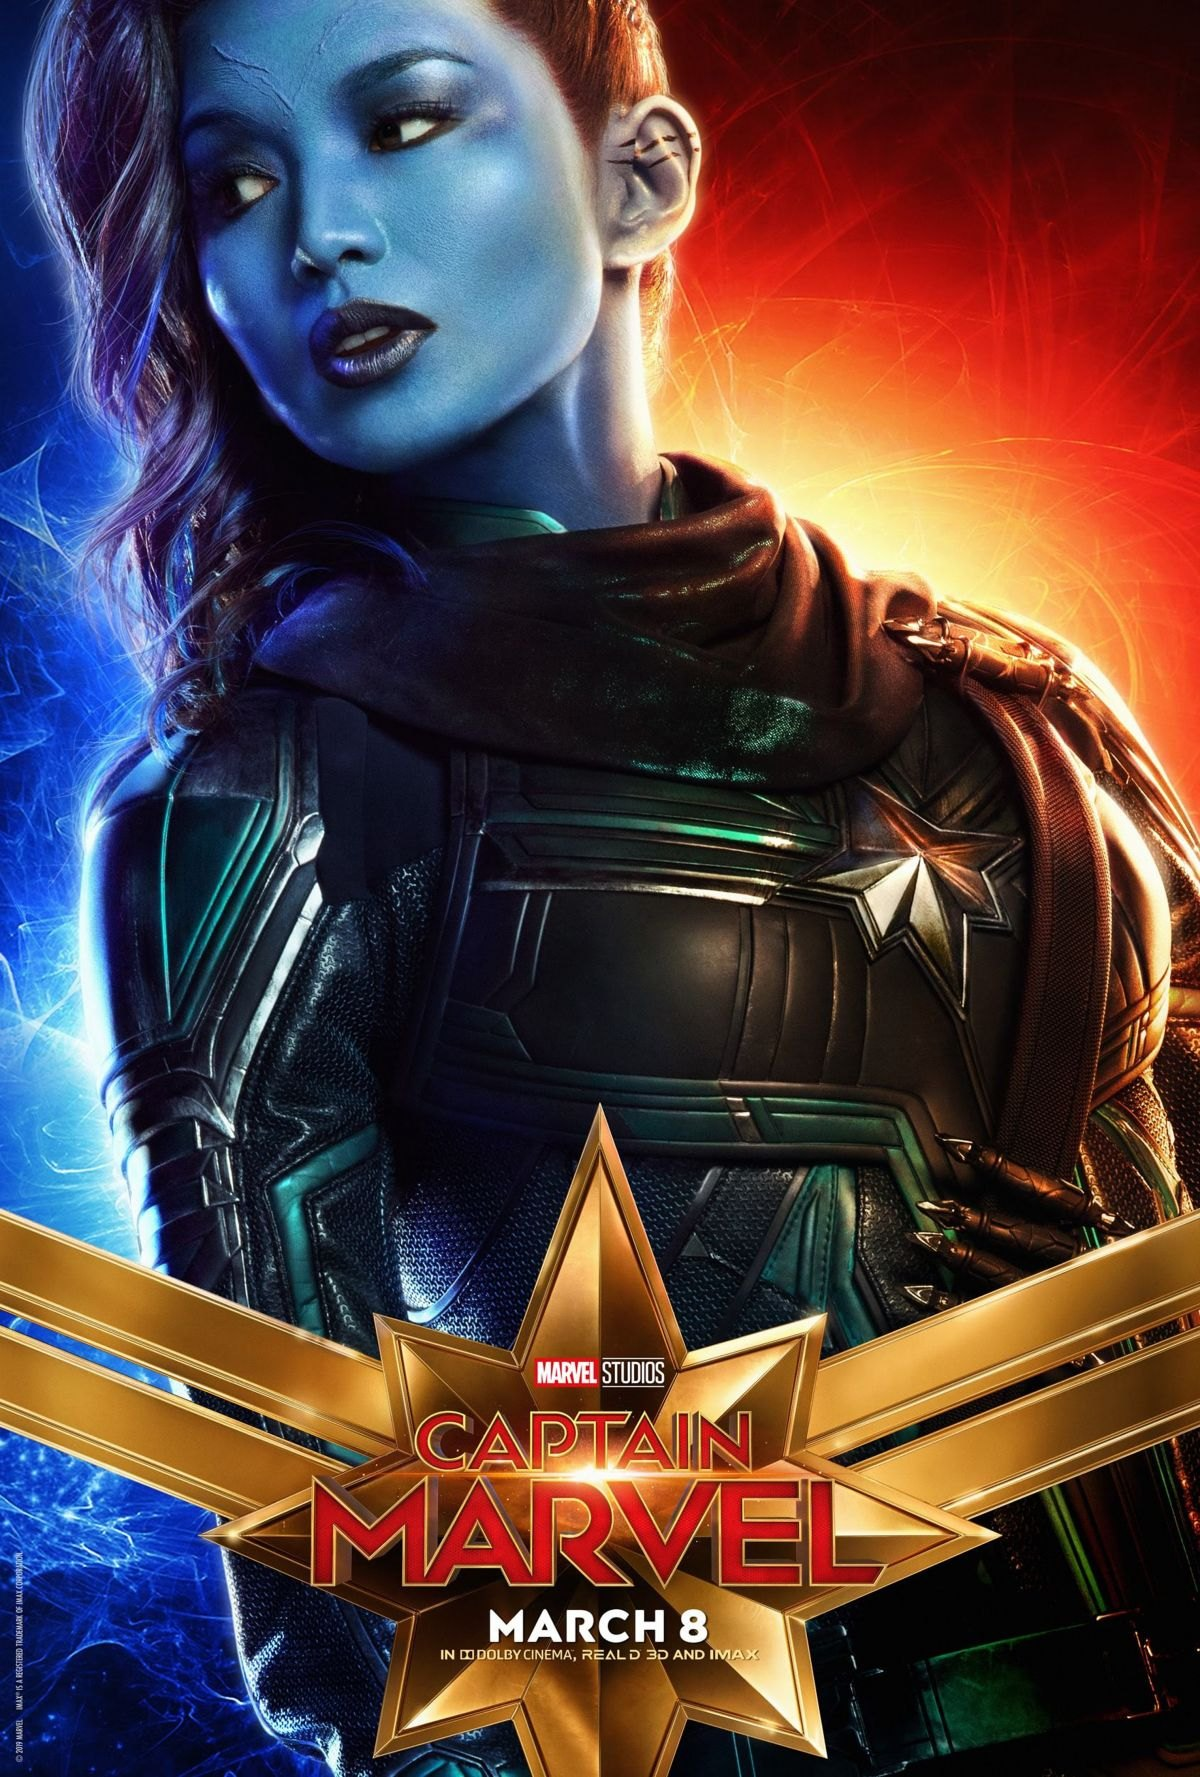 gemma-chan-and-brie-larson-captain-marvel-posters-stills-and-trailers-21.jpg